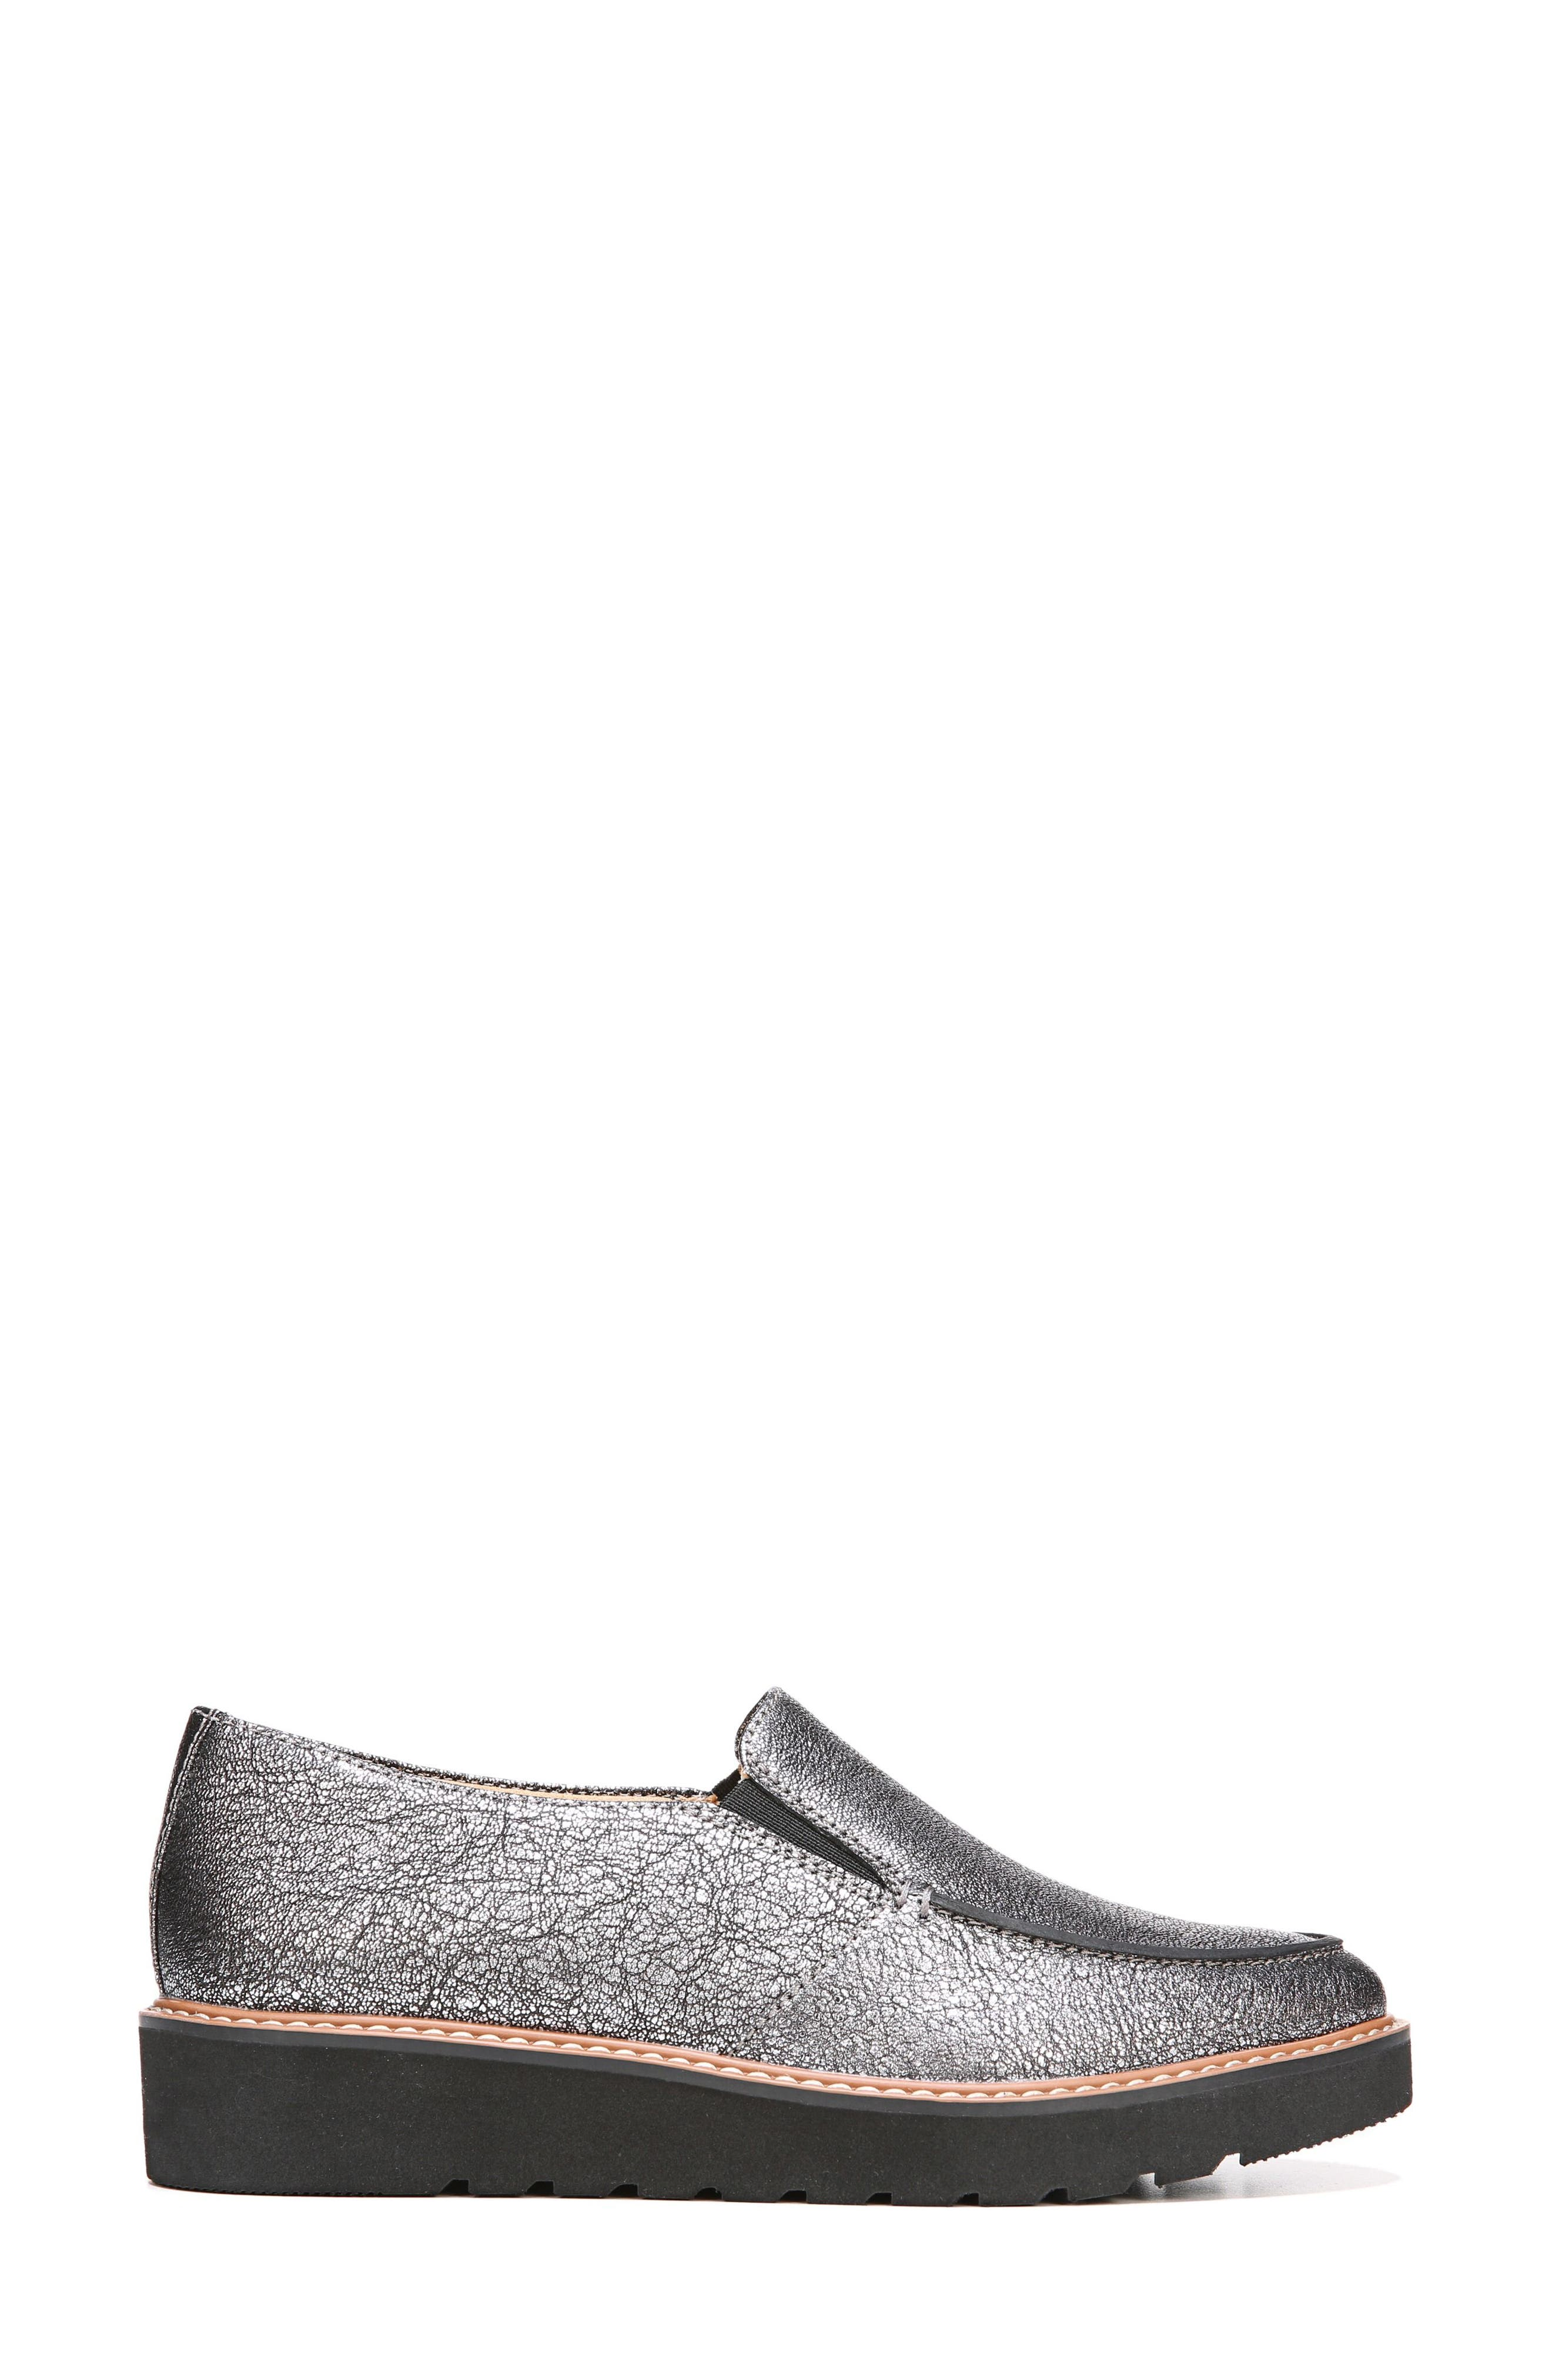 Aibileen Loafer,                             Alternate thumbnail 3, color,                             Silver Leather